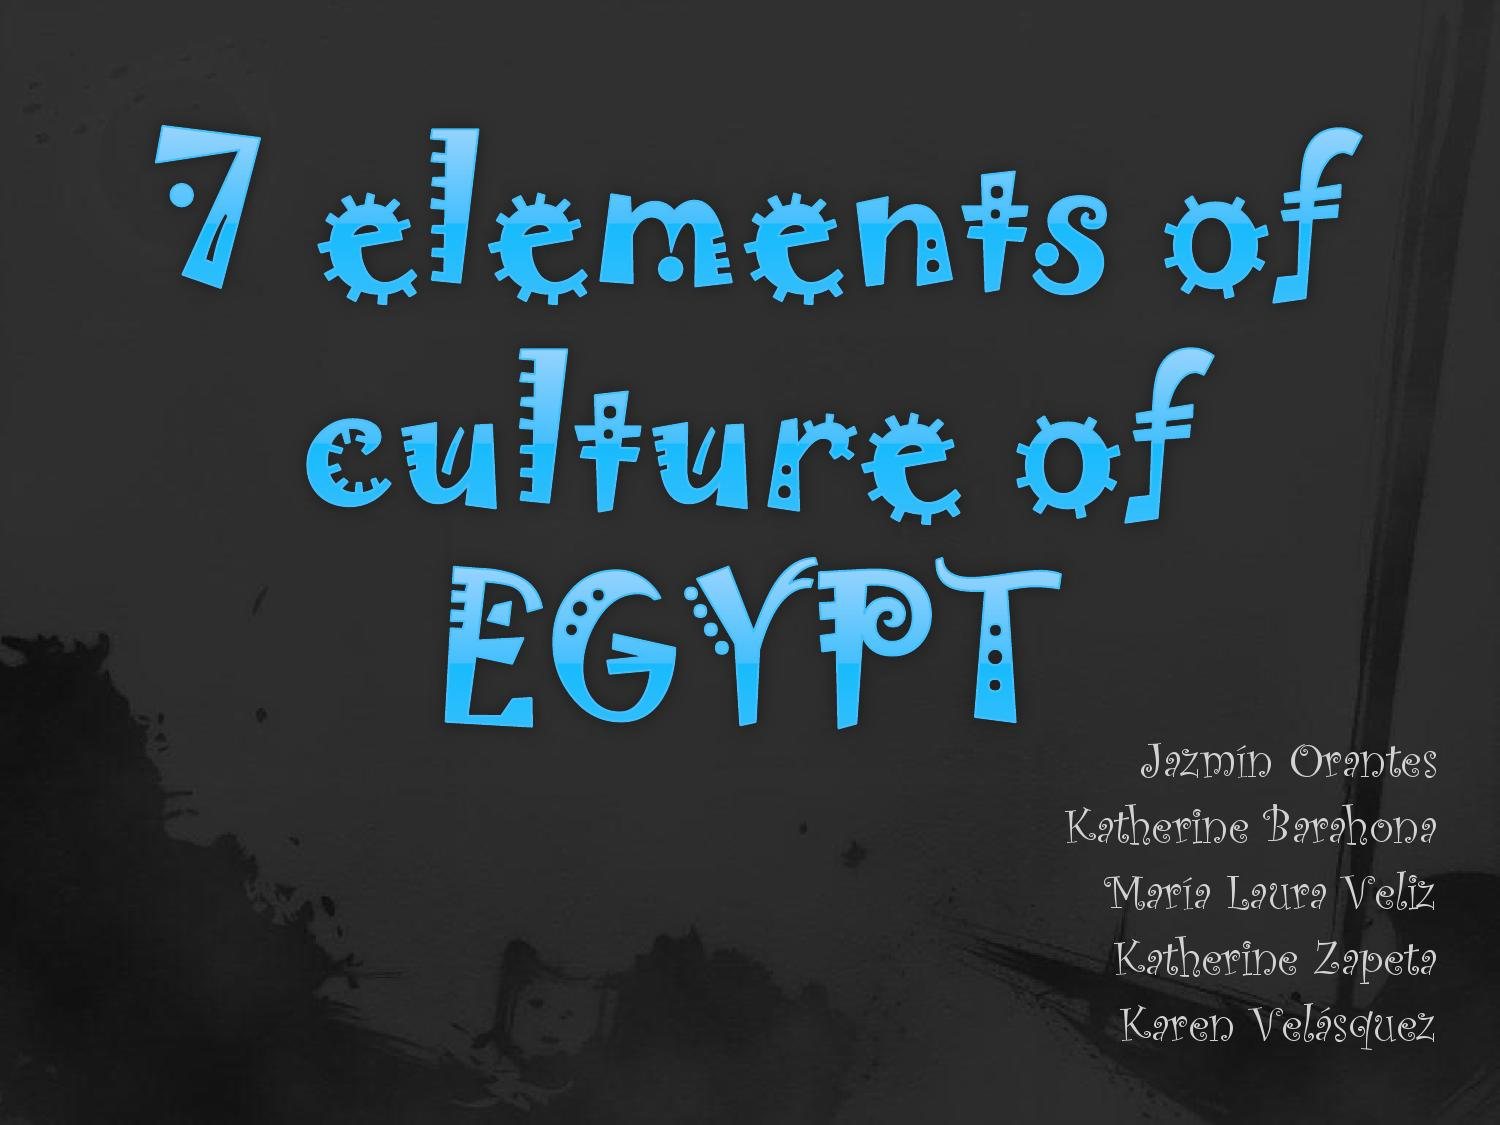 20 Elements of culture of Egypt by Kathy Barahona   issuu